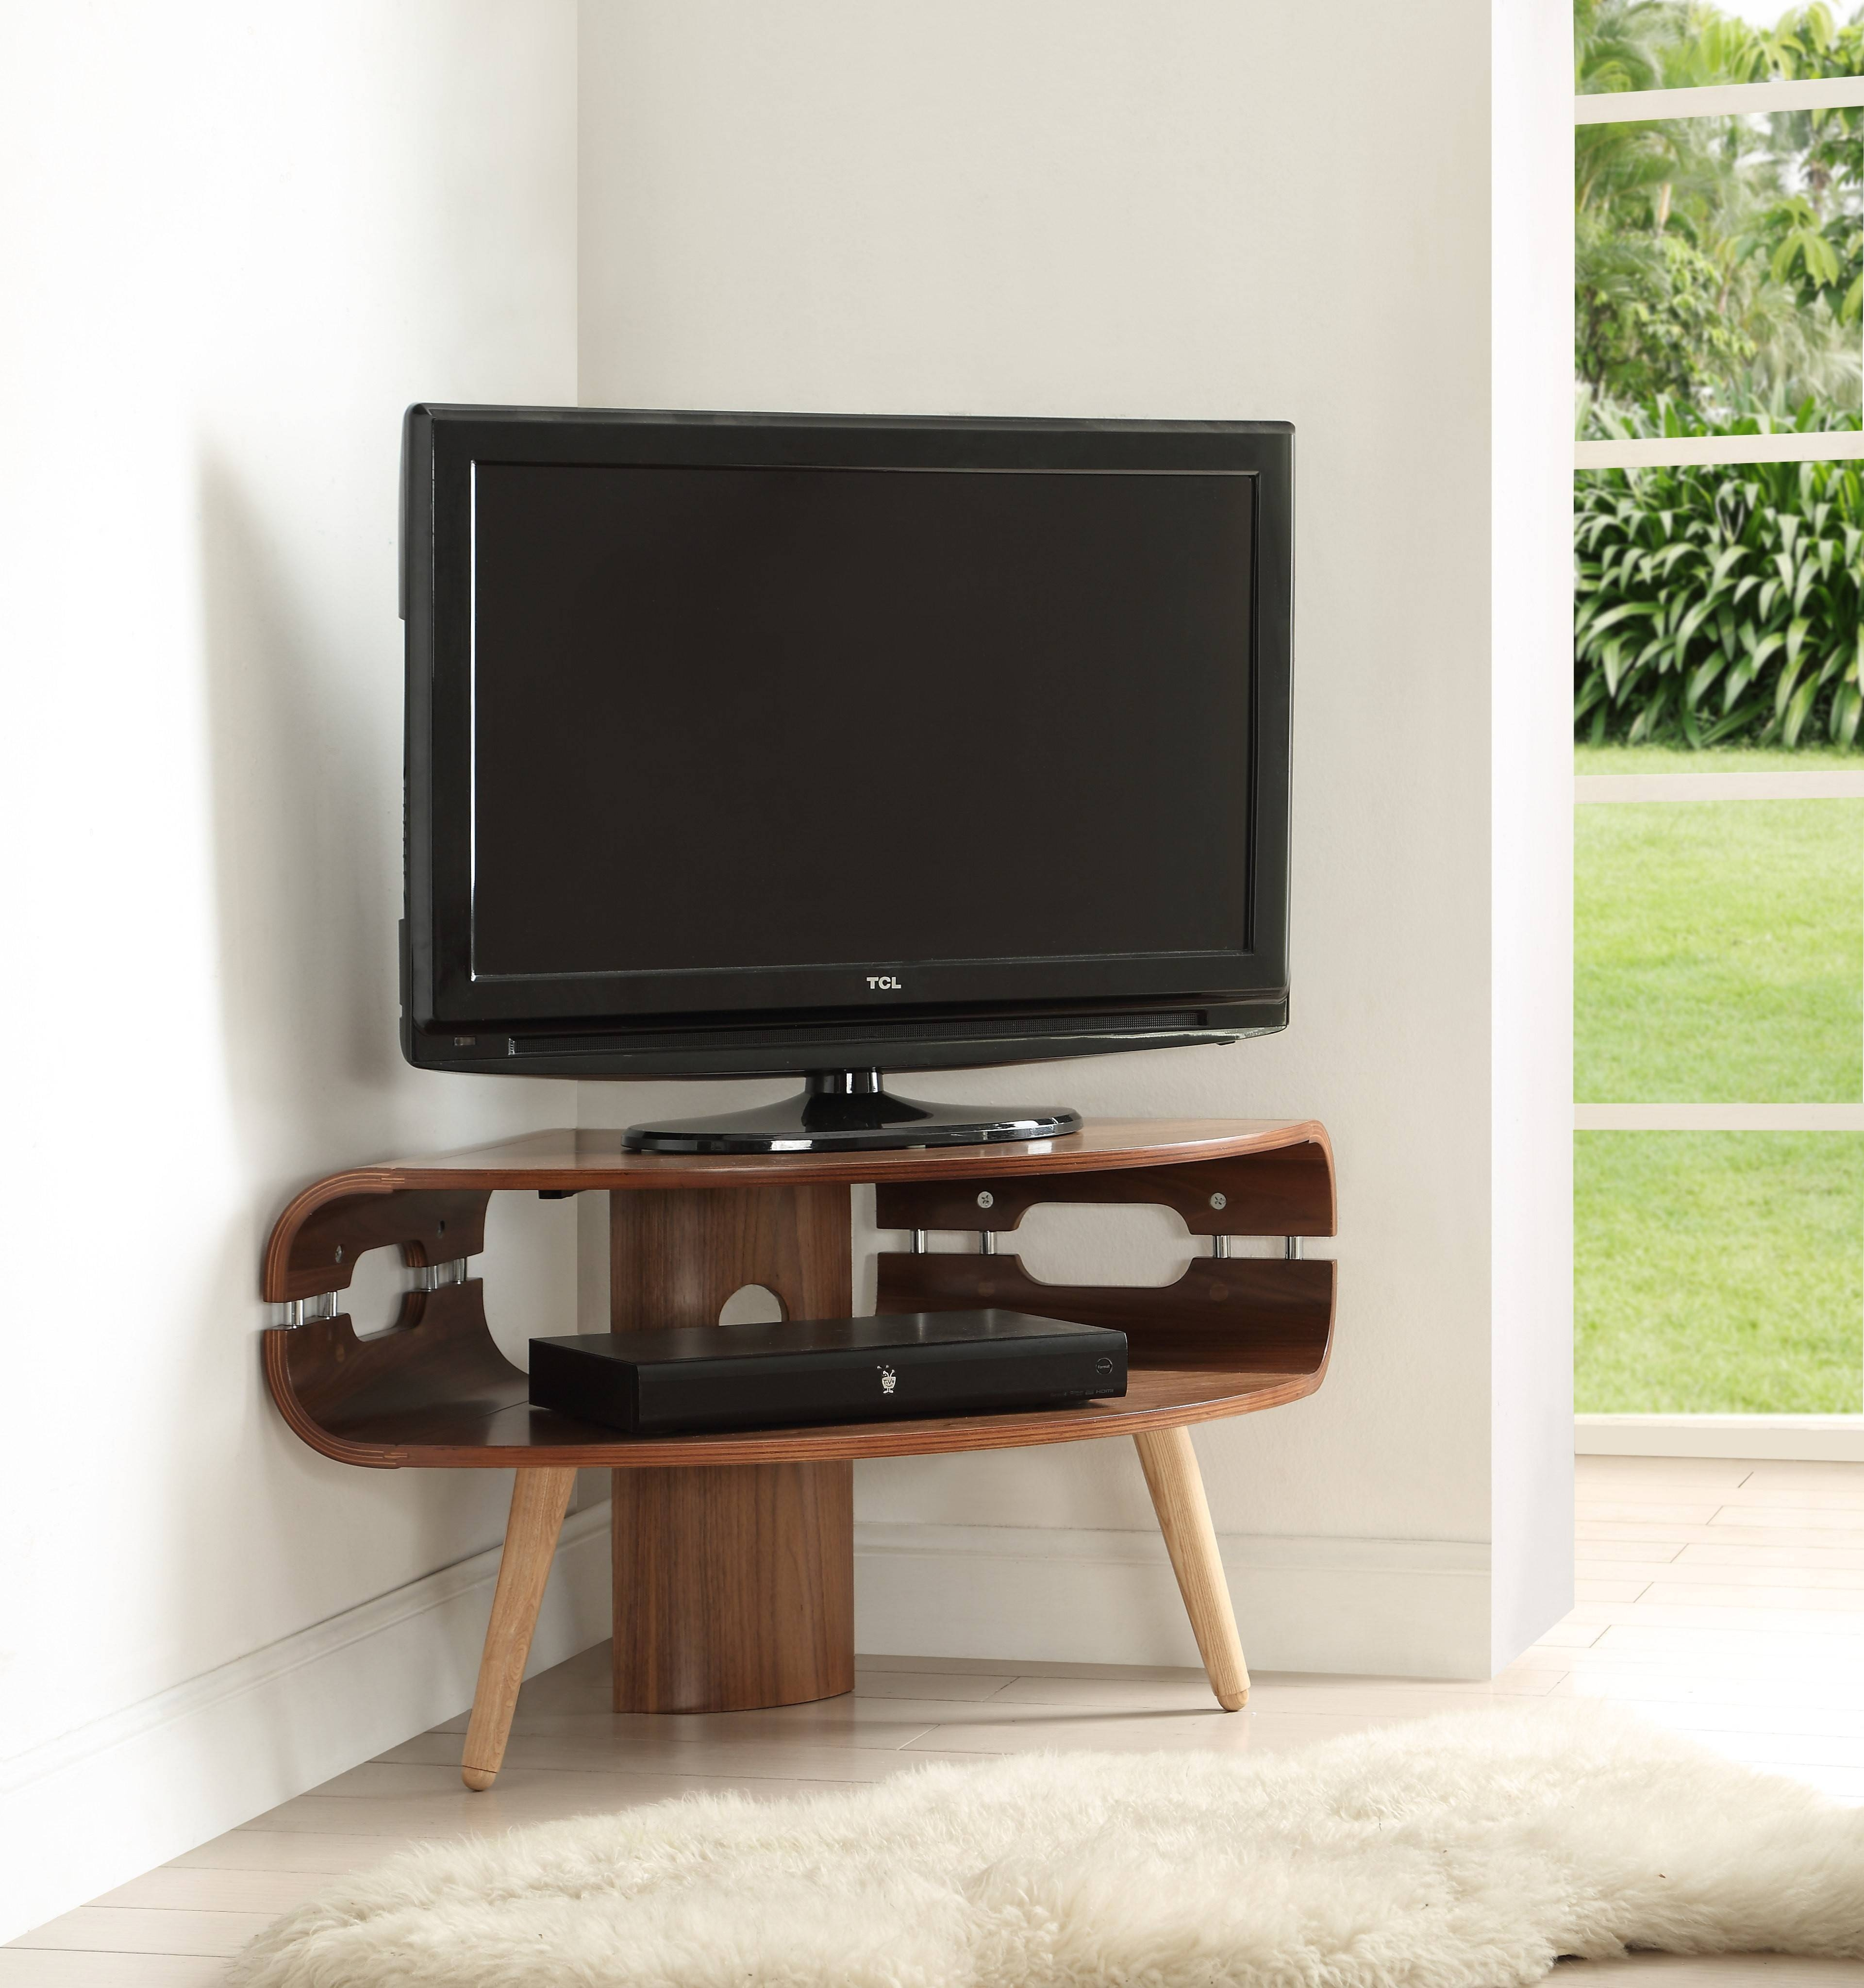 Jf701 Corner Tv Stand - Cooks with Como Tv Stands (Image 5 of 15)